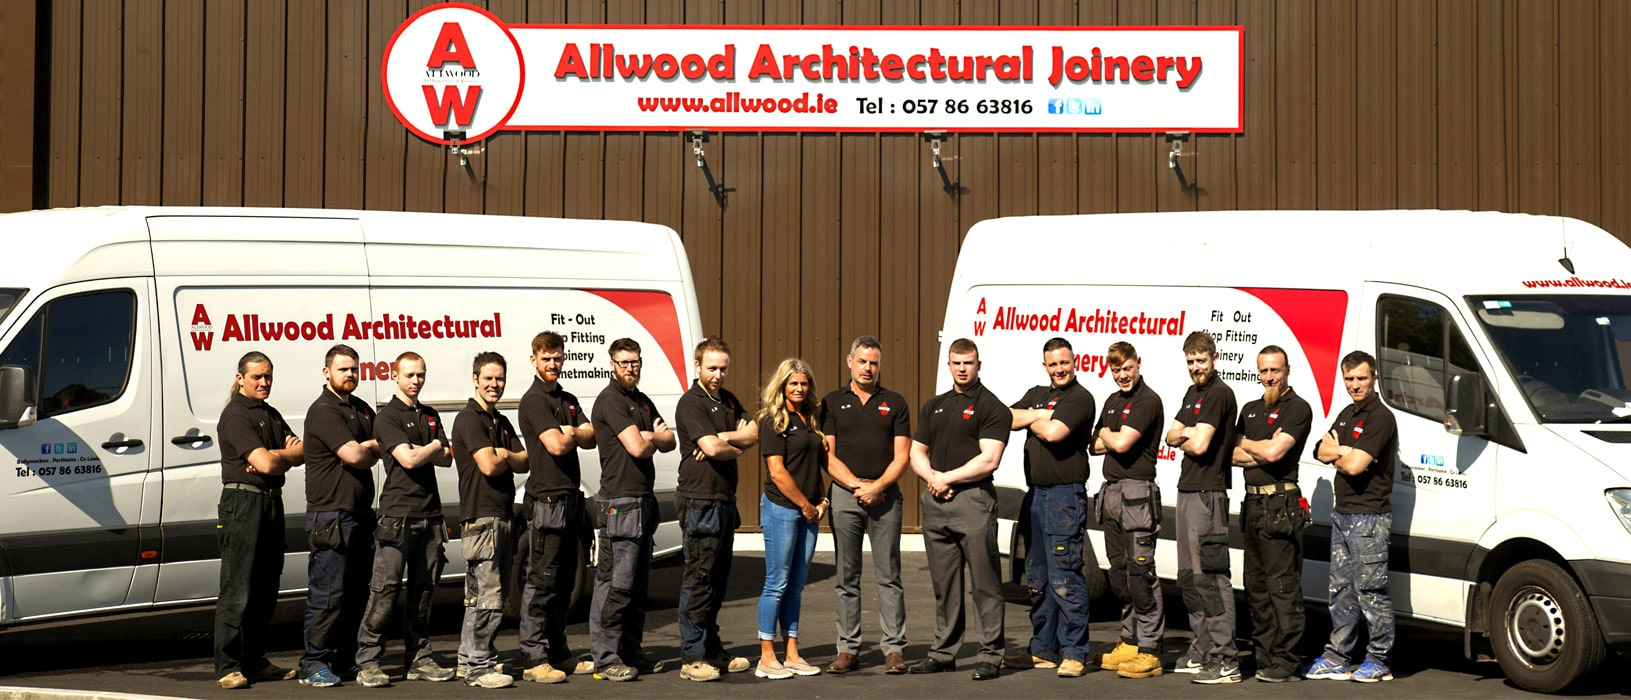 Allwood Architectural Joinery Margaret Connor Gerry Group Image